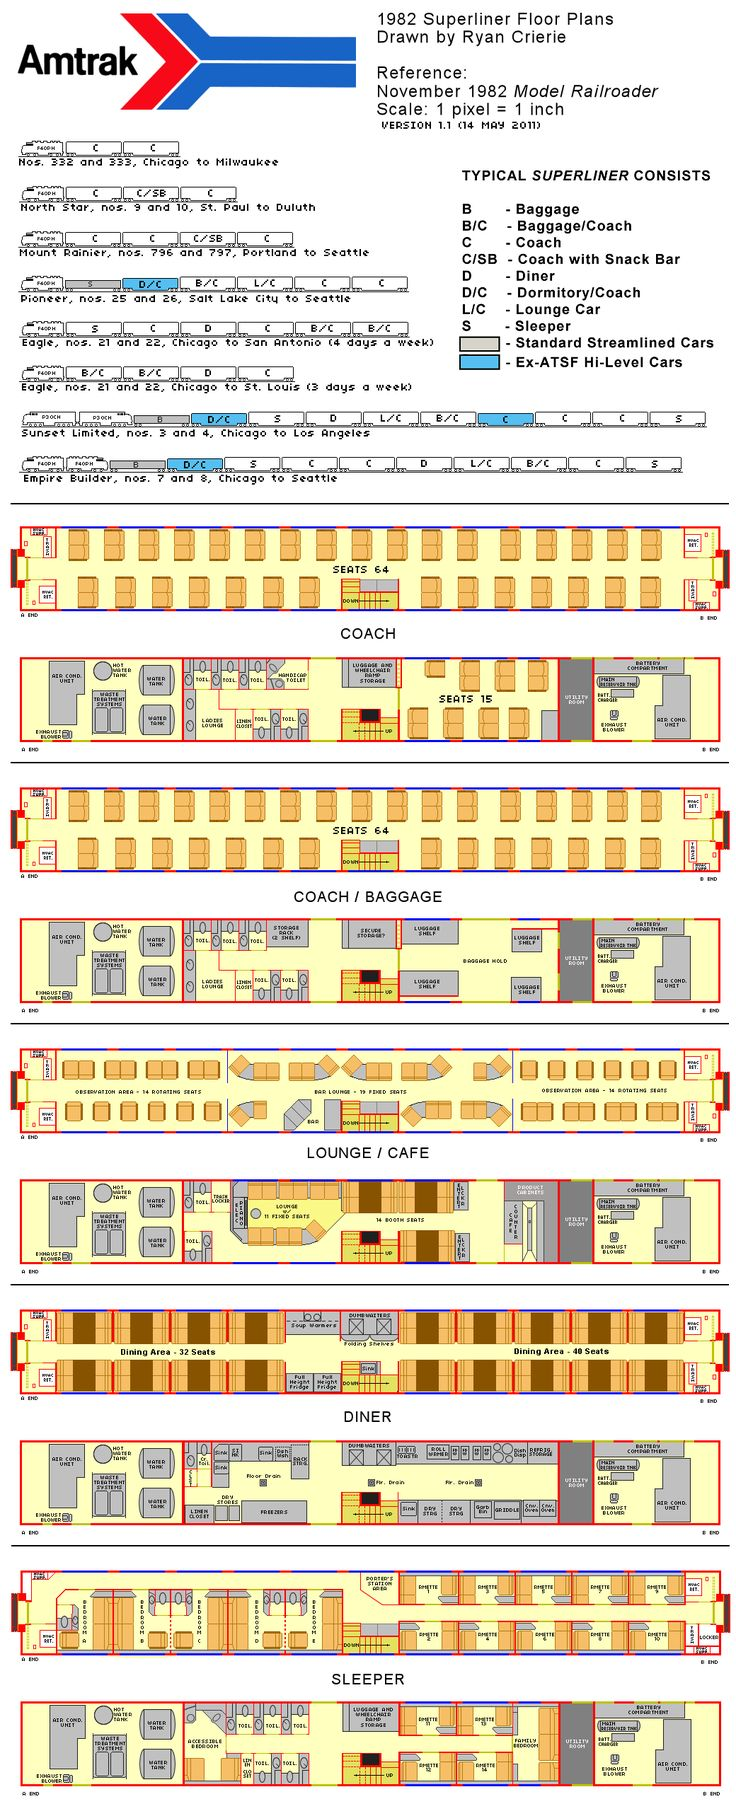 Amtrak superliner flooro plans 1982 diagrams drawings for Quadruplex floor plans